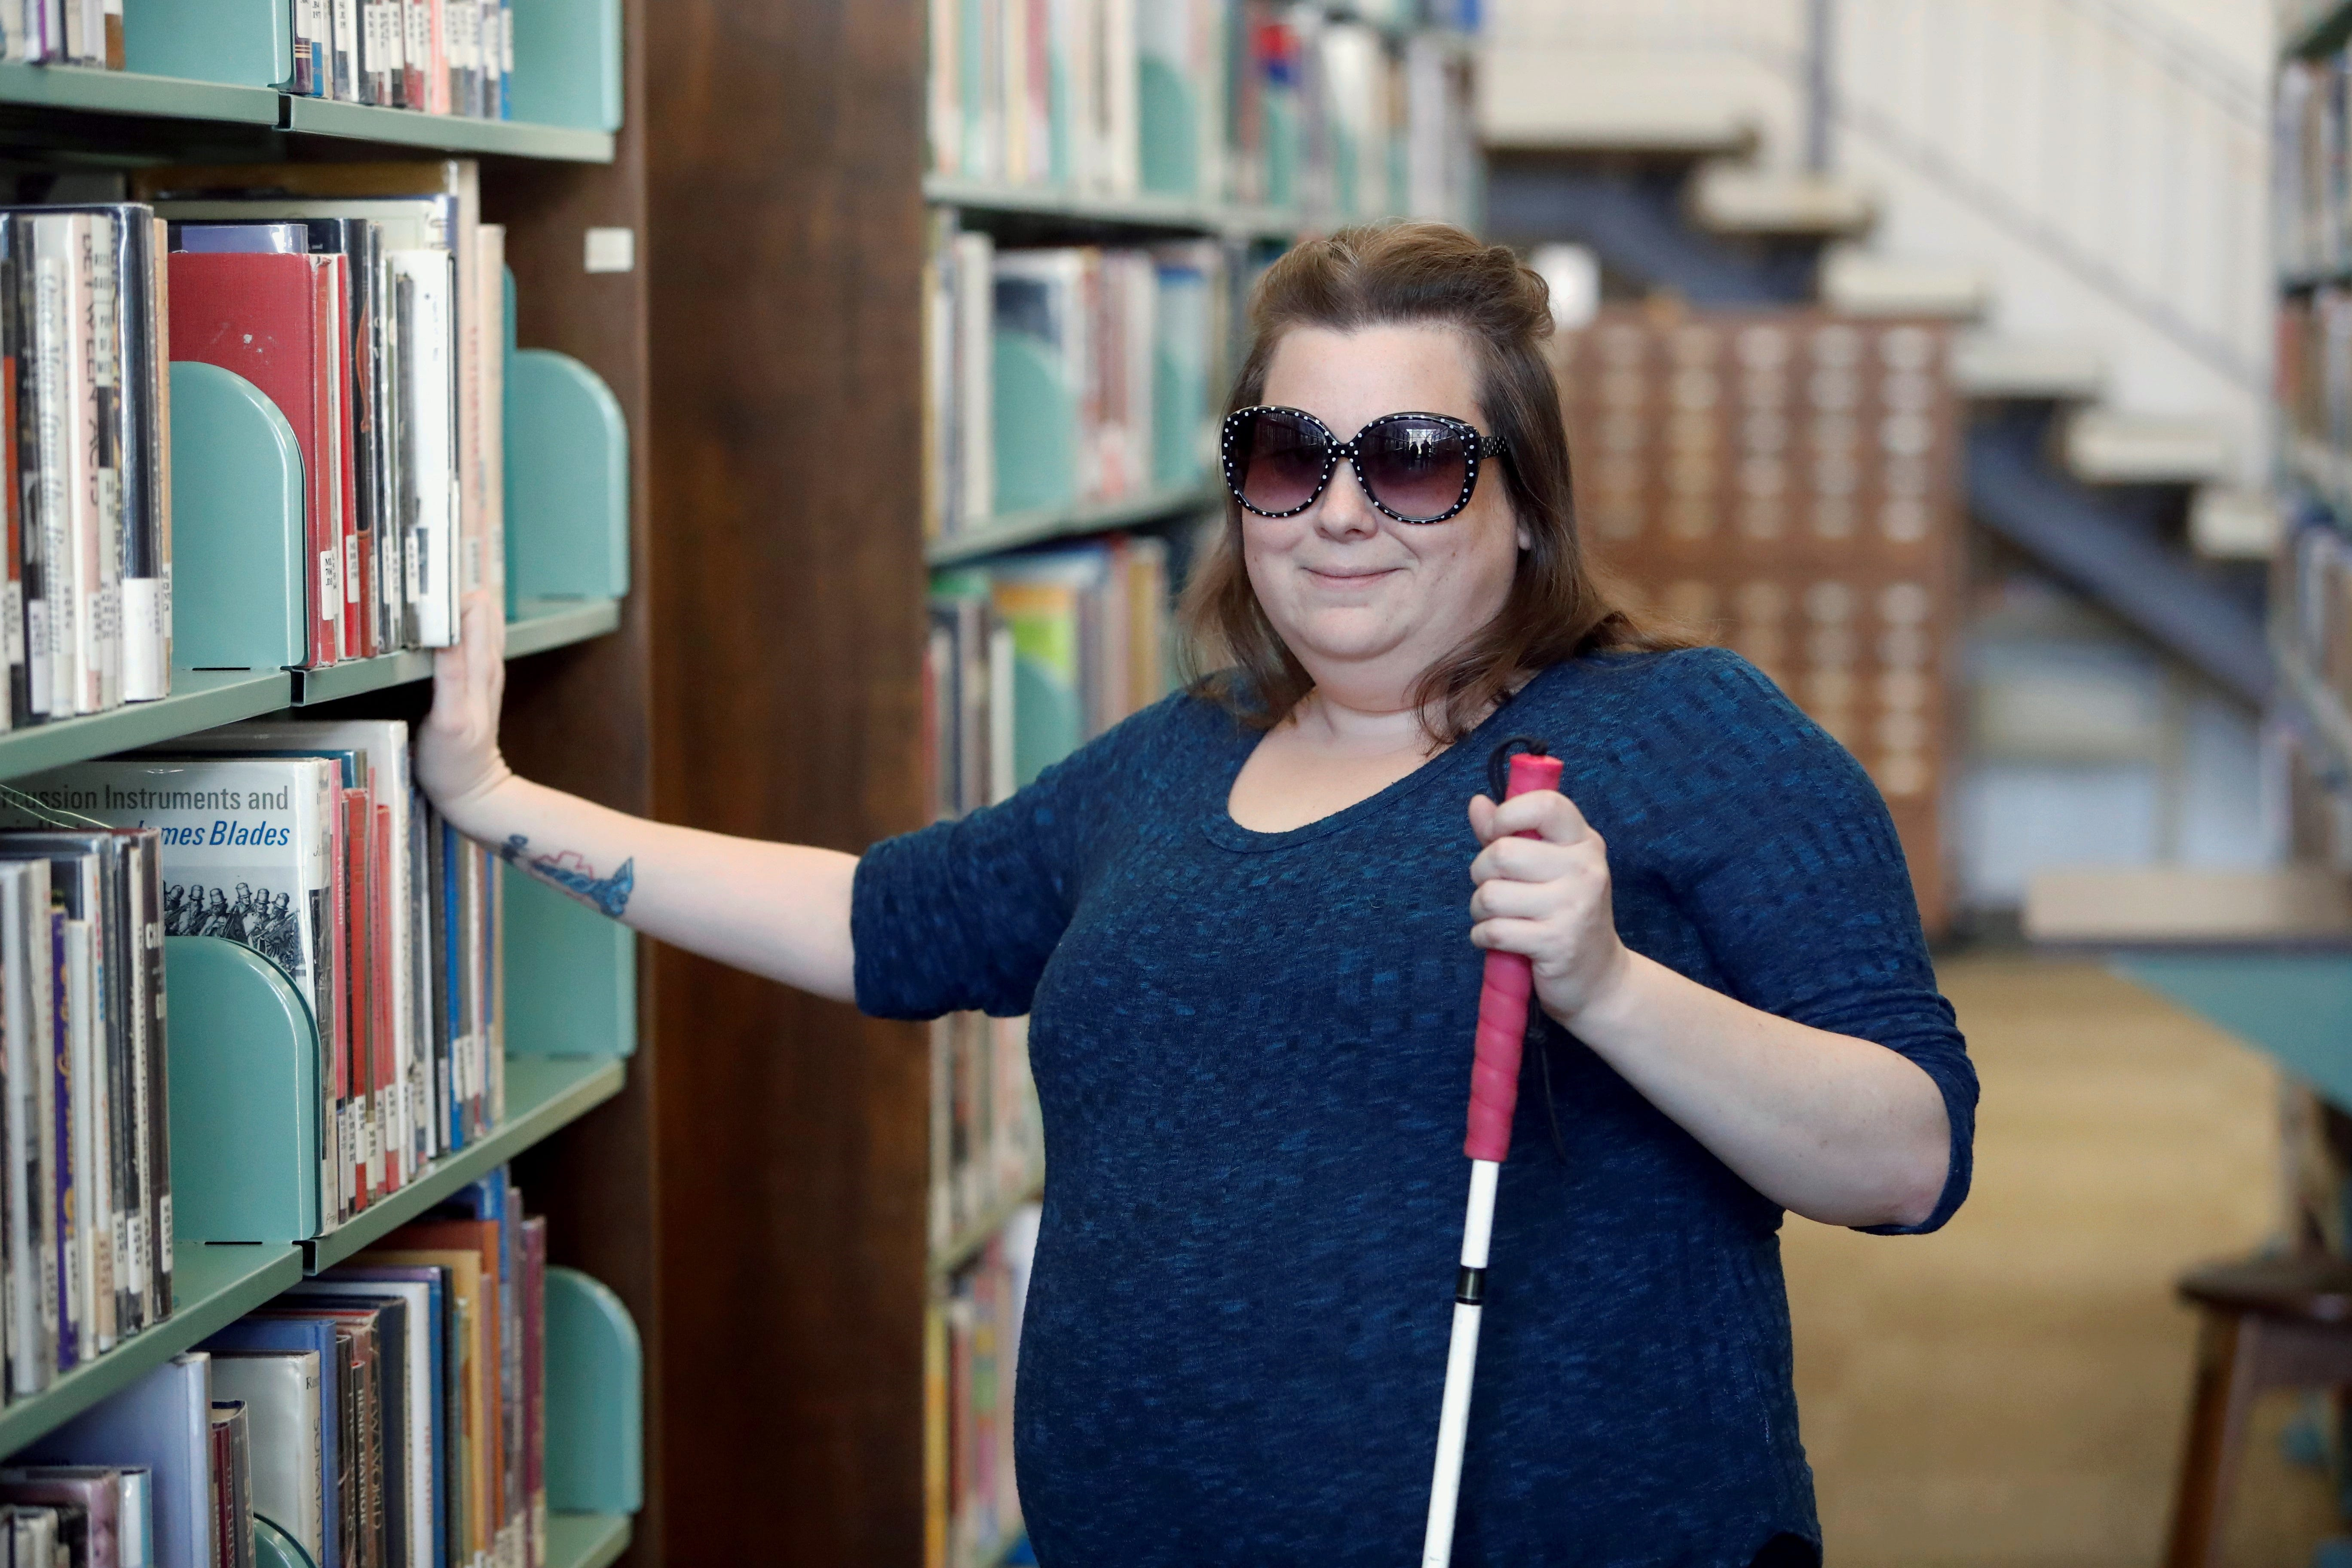 Sarah Theubet, 38, has Type 1 diabetes that robbed her of her vision in one eye and will eventually render her blind.